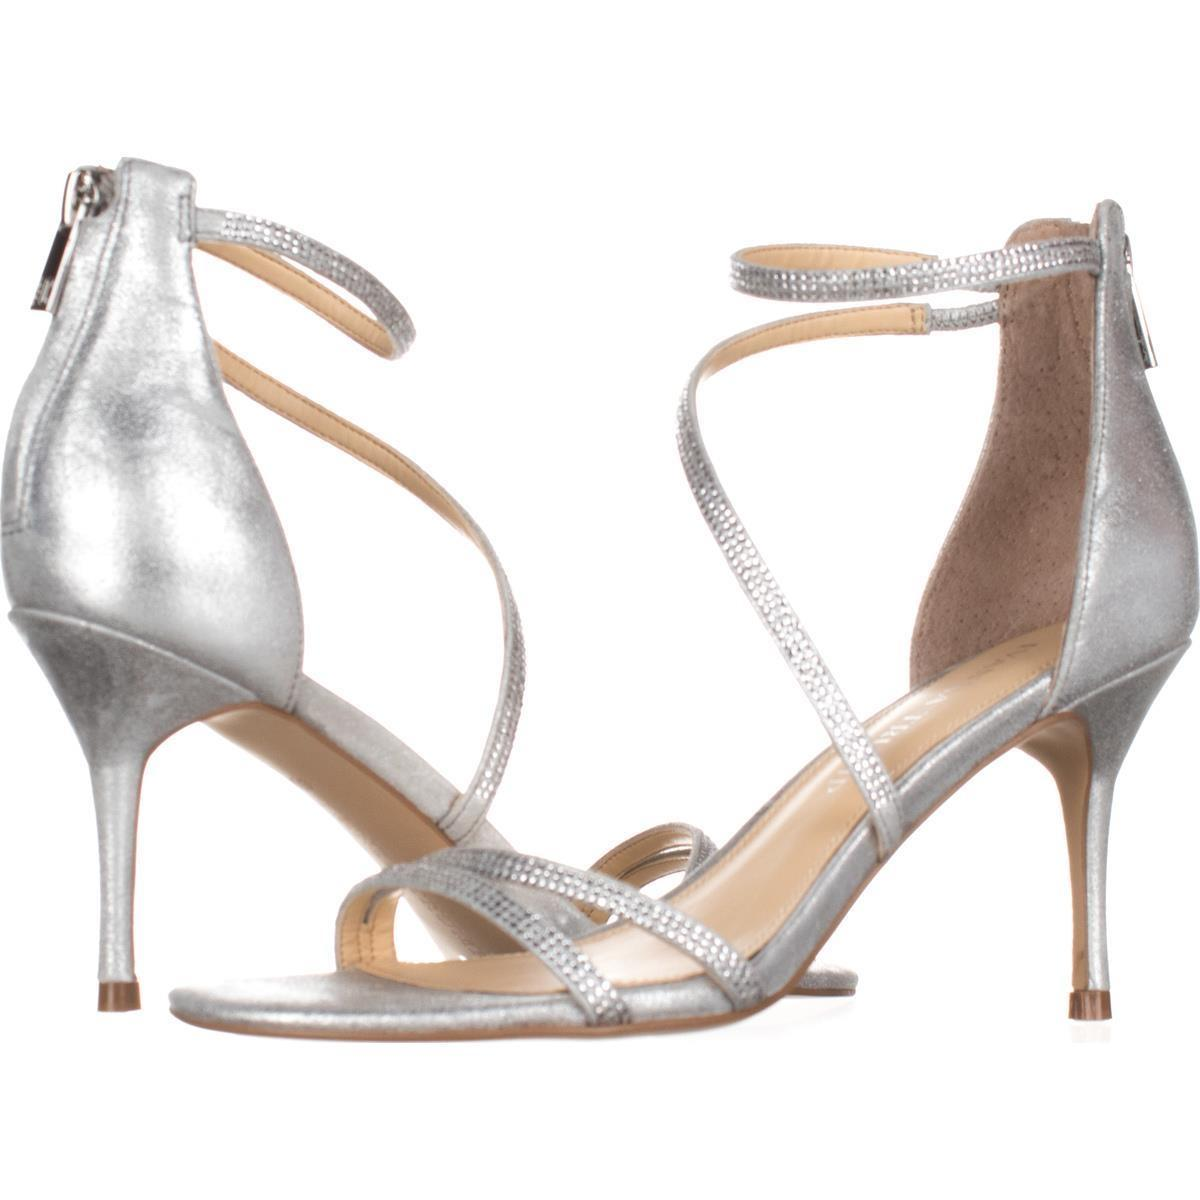 Ivanka Trump Silver Pumps